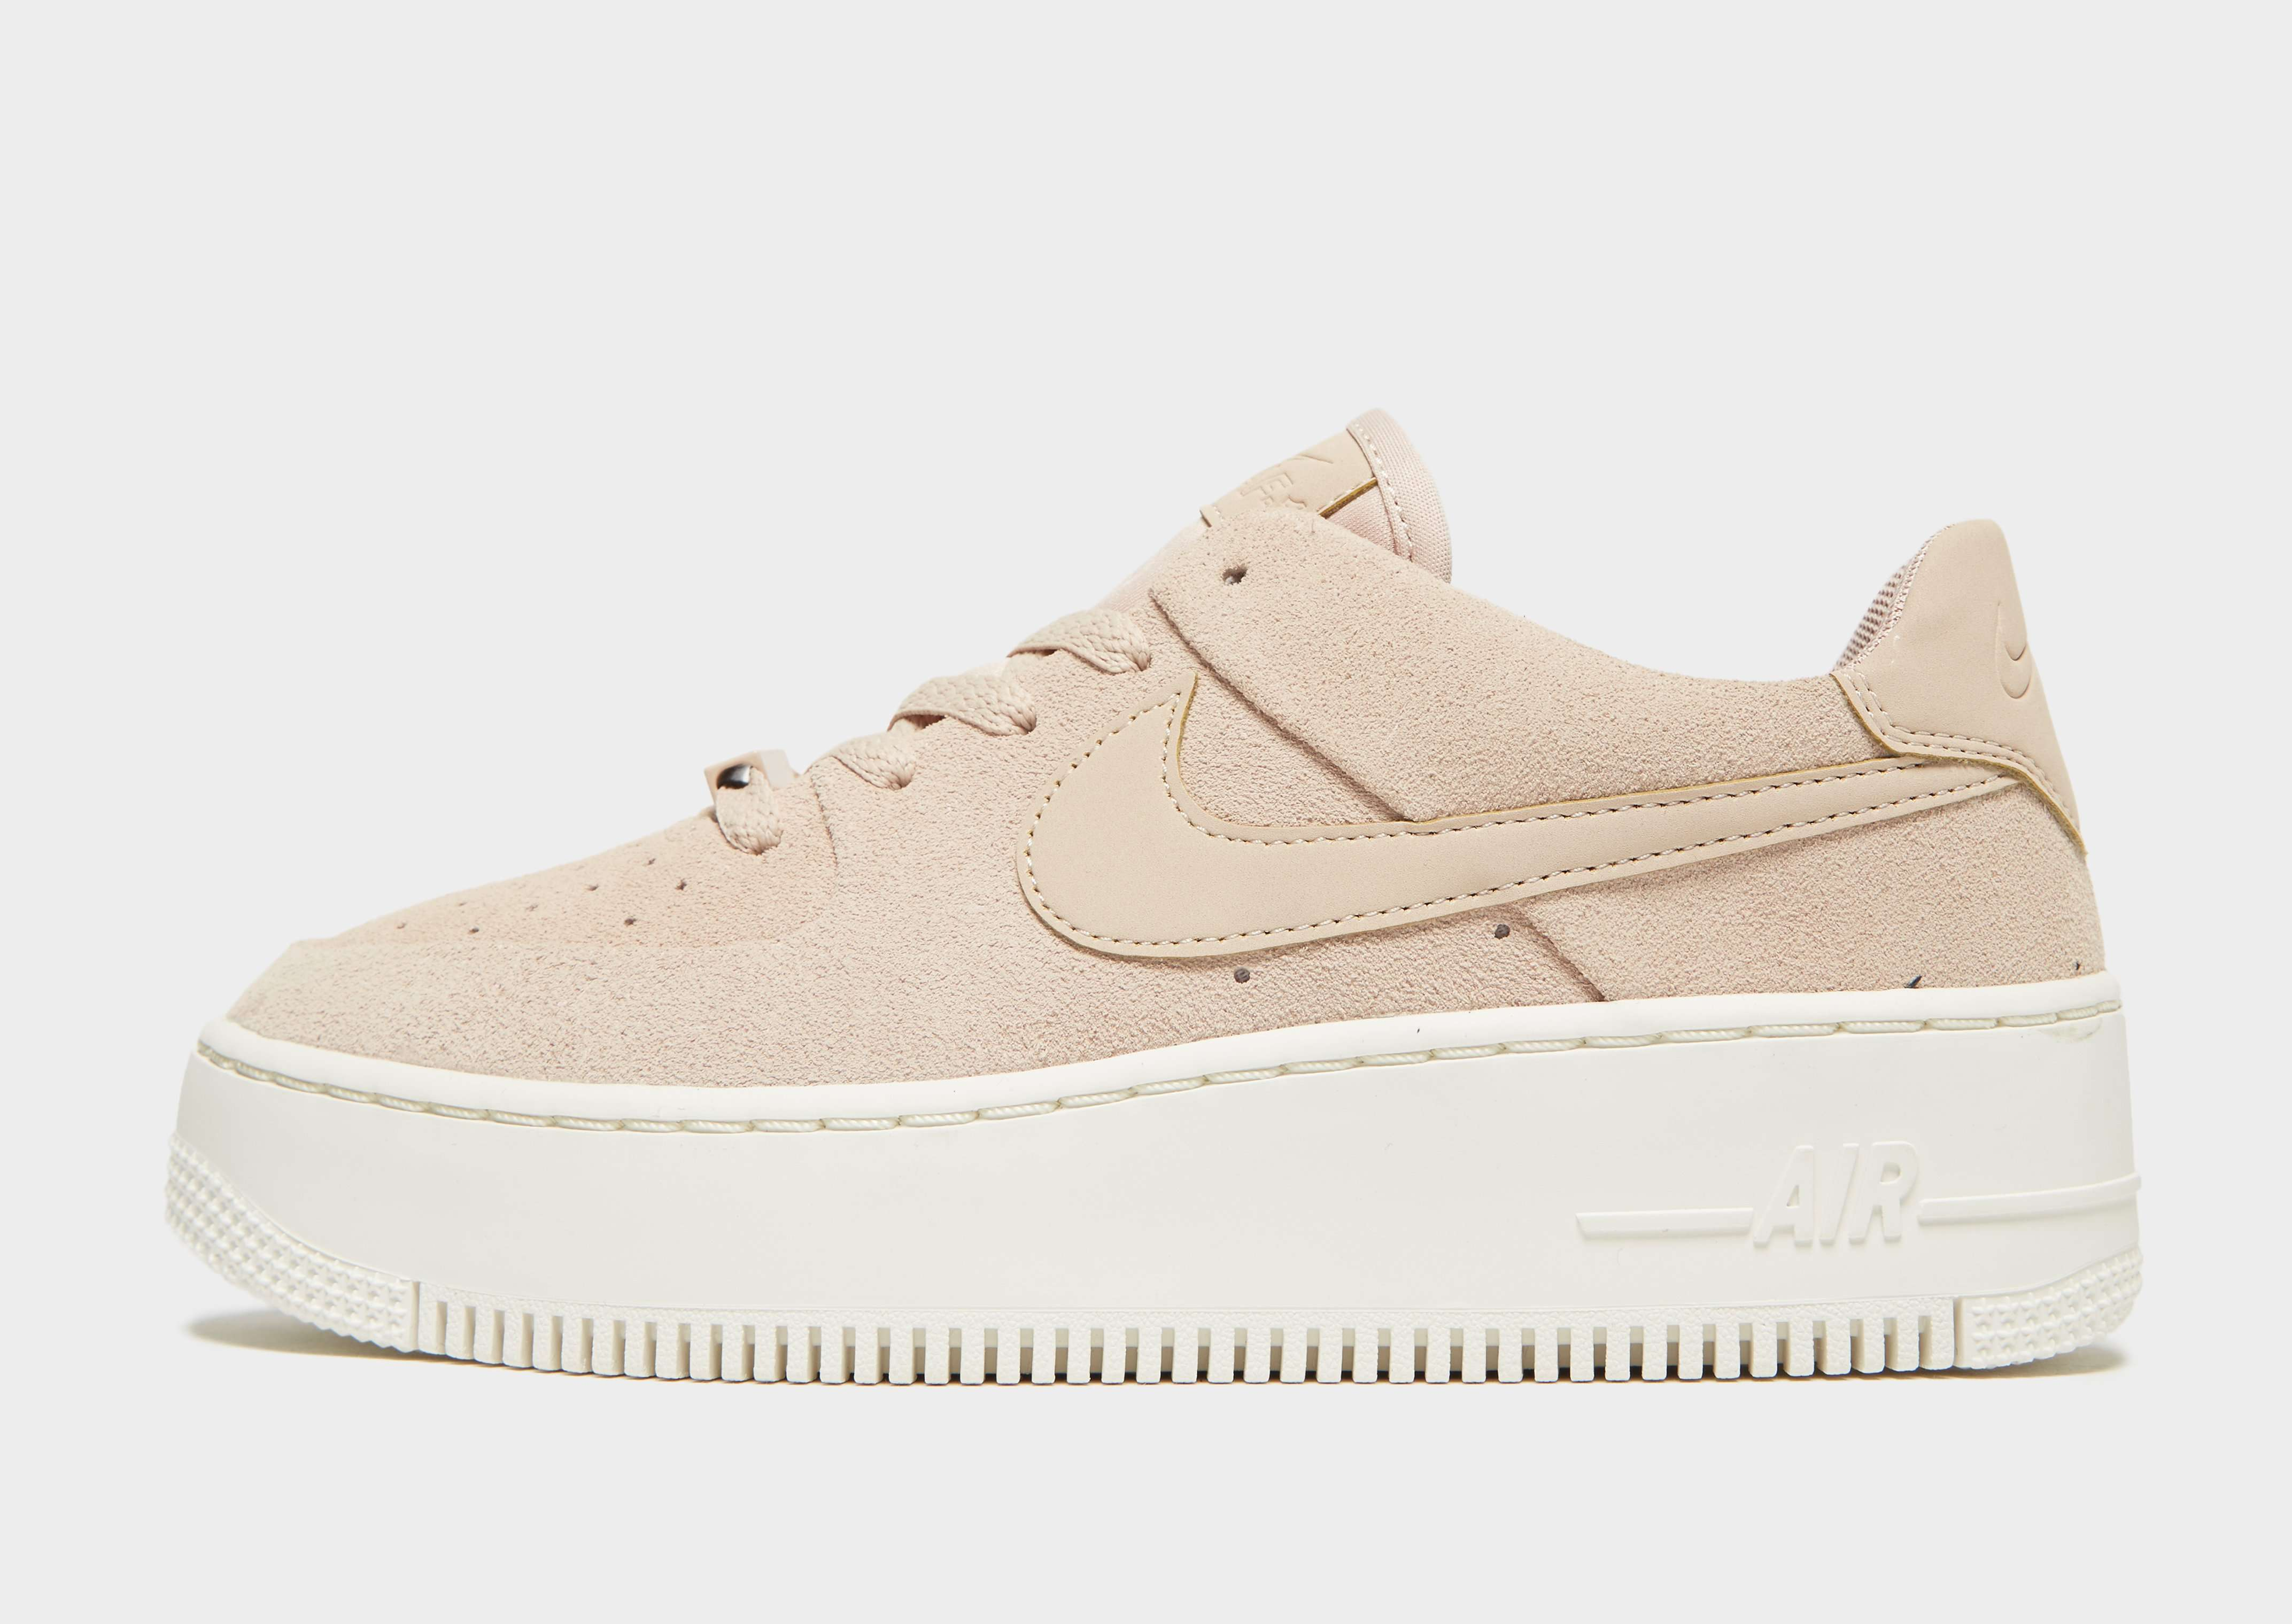 check out 1eefa 19c4c Nike Air Force 1 Sage Low Womens  JD Sports